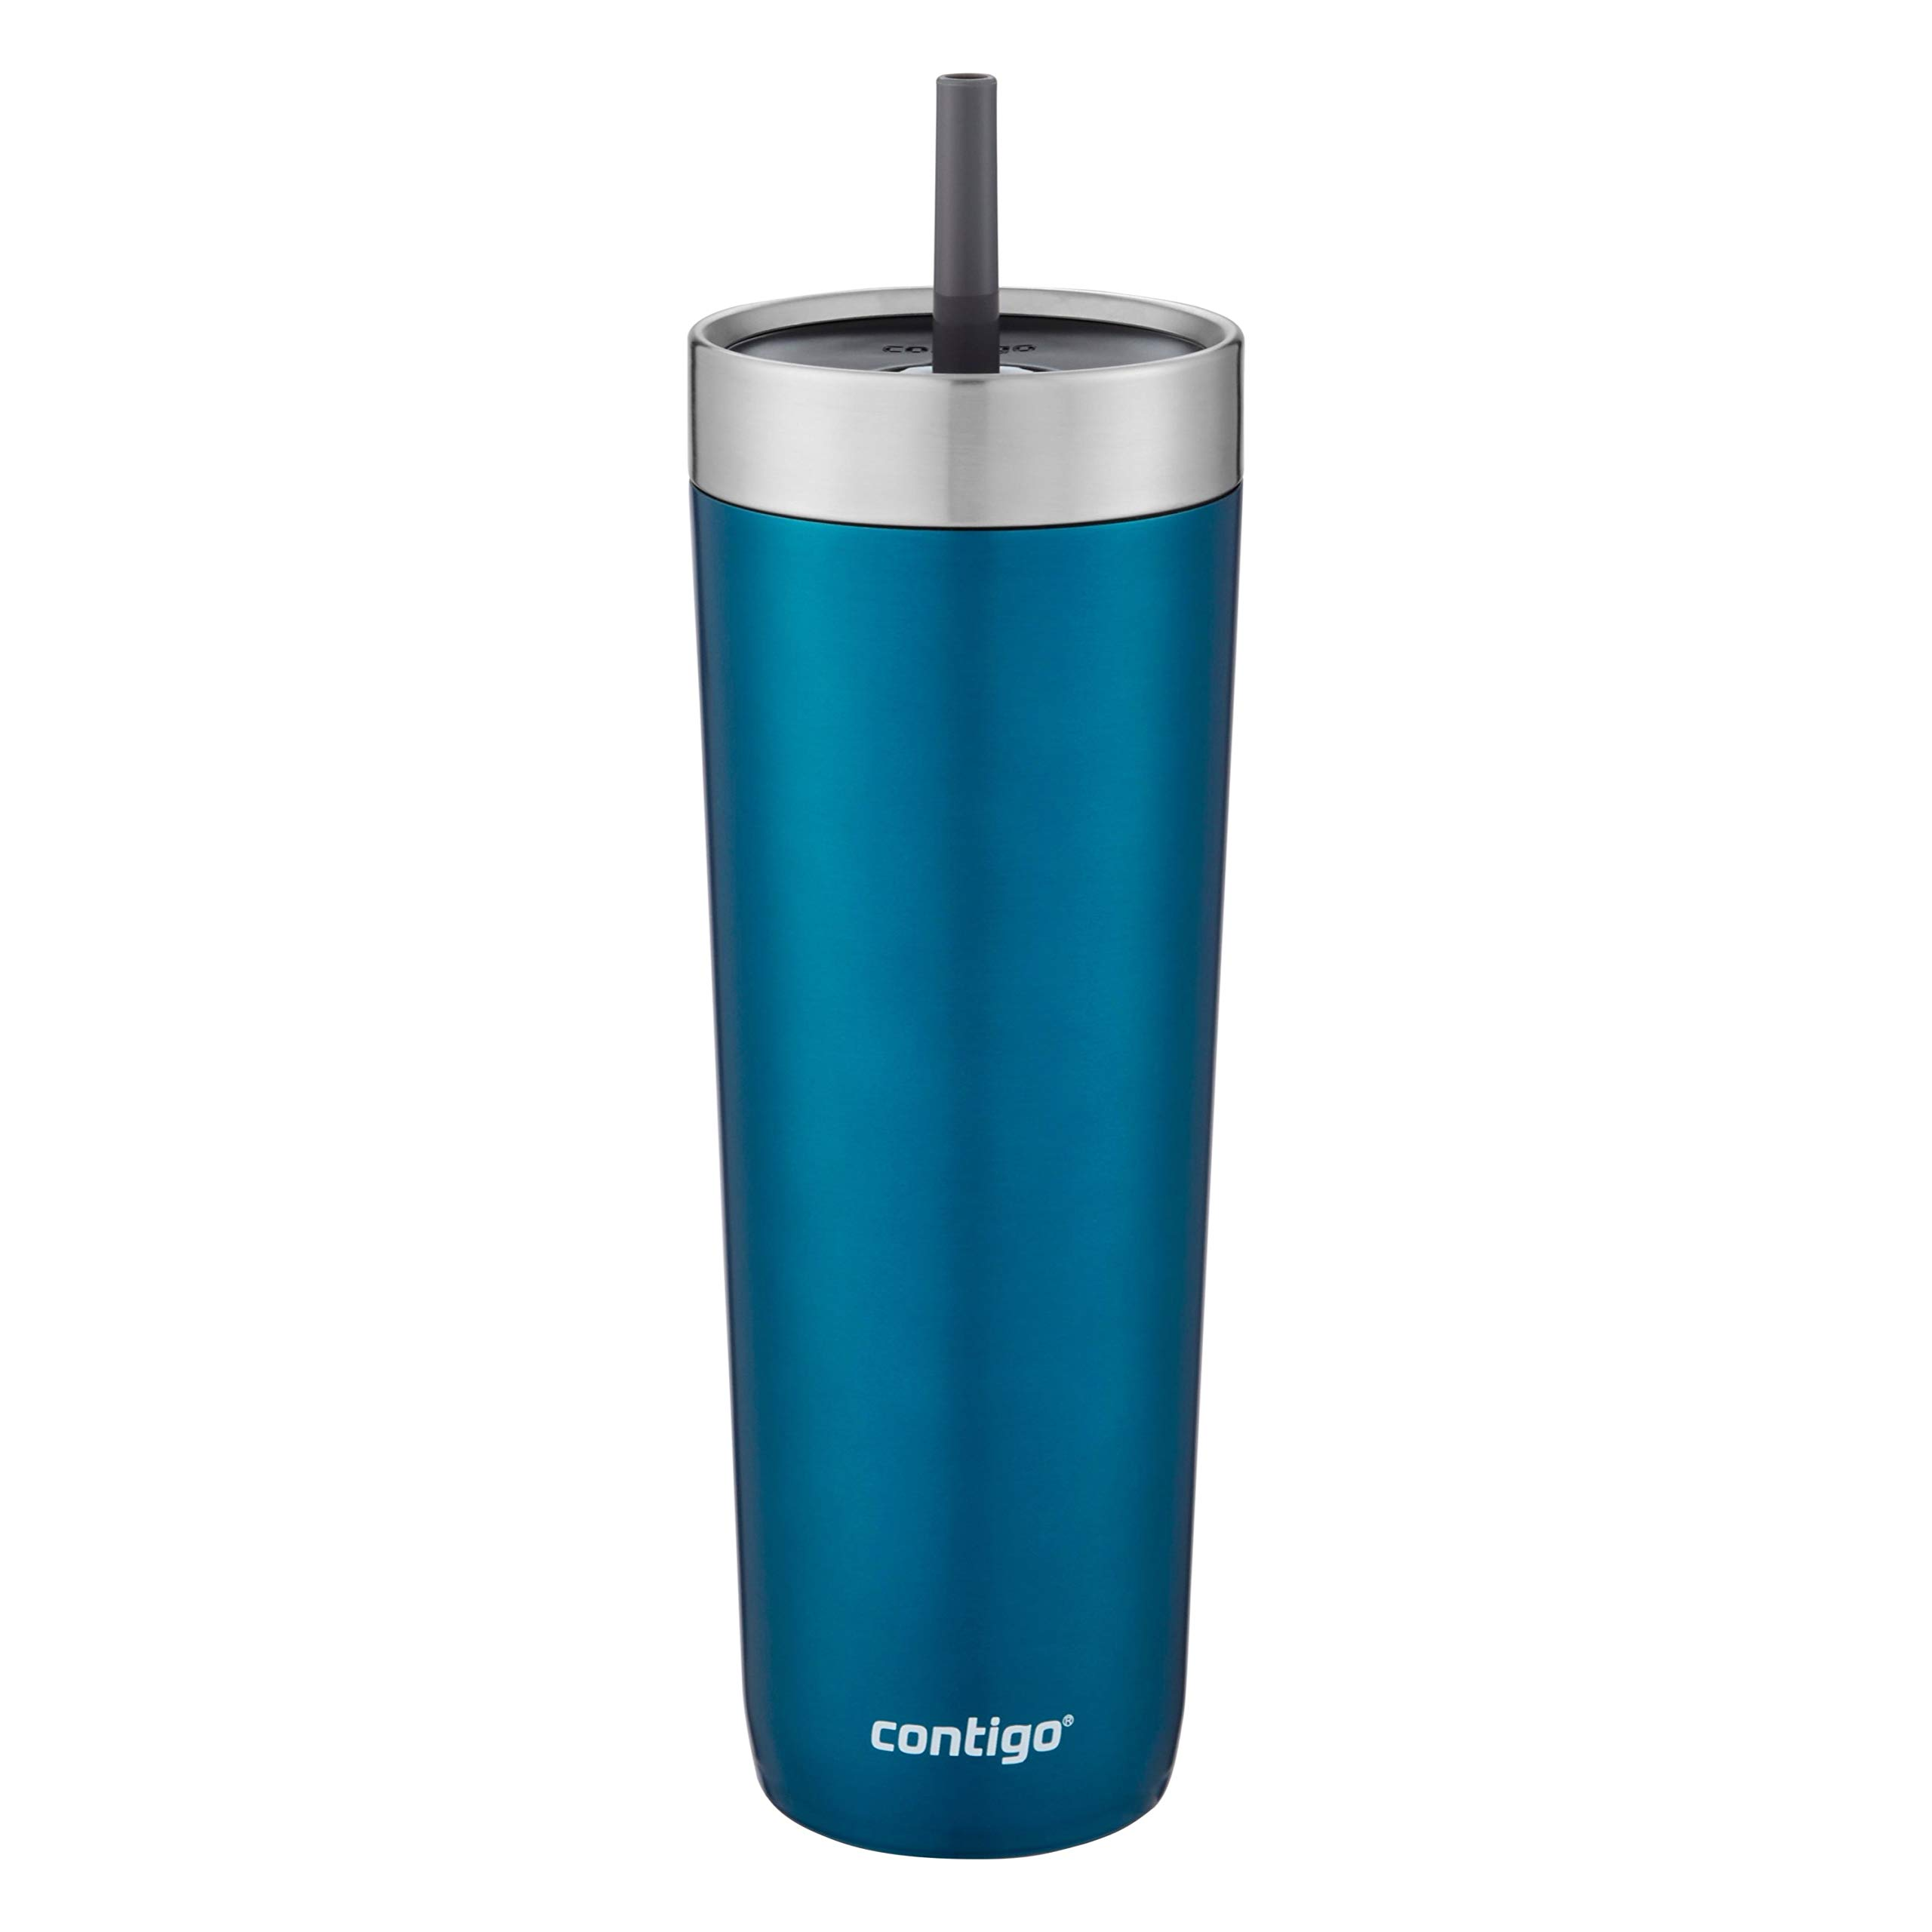 Contigo Luxe Stainless Steel Tumbler with Spill-Proof Lid and Straw | Insulated Travel Tumbler with No-Spill Straw, 24 oz, Biscay Bay by Contigo